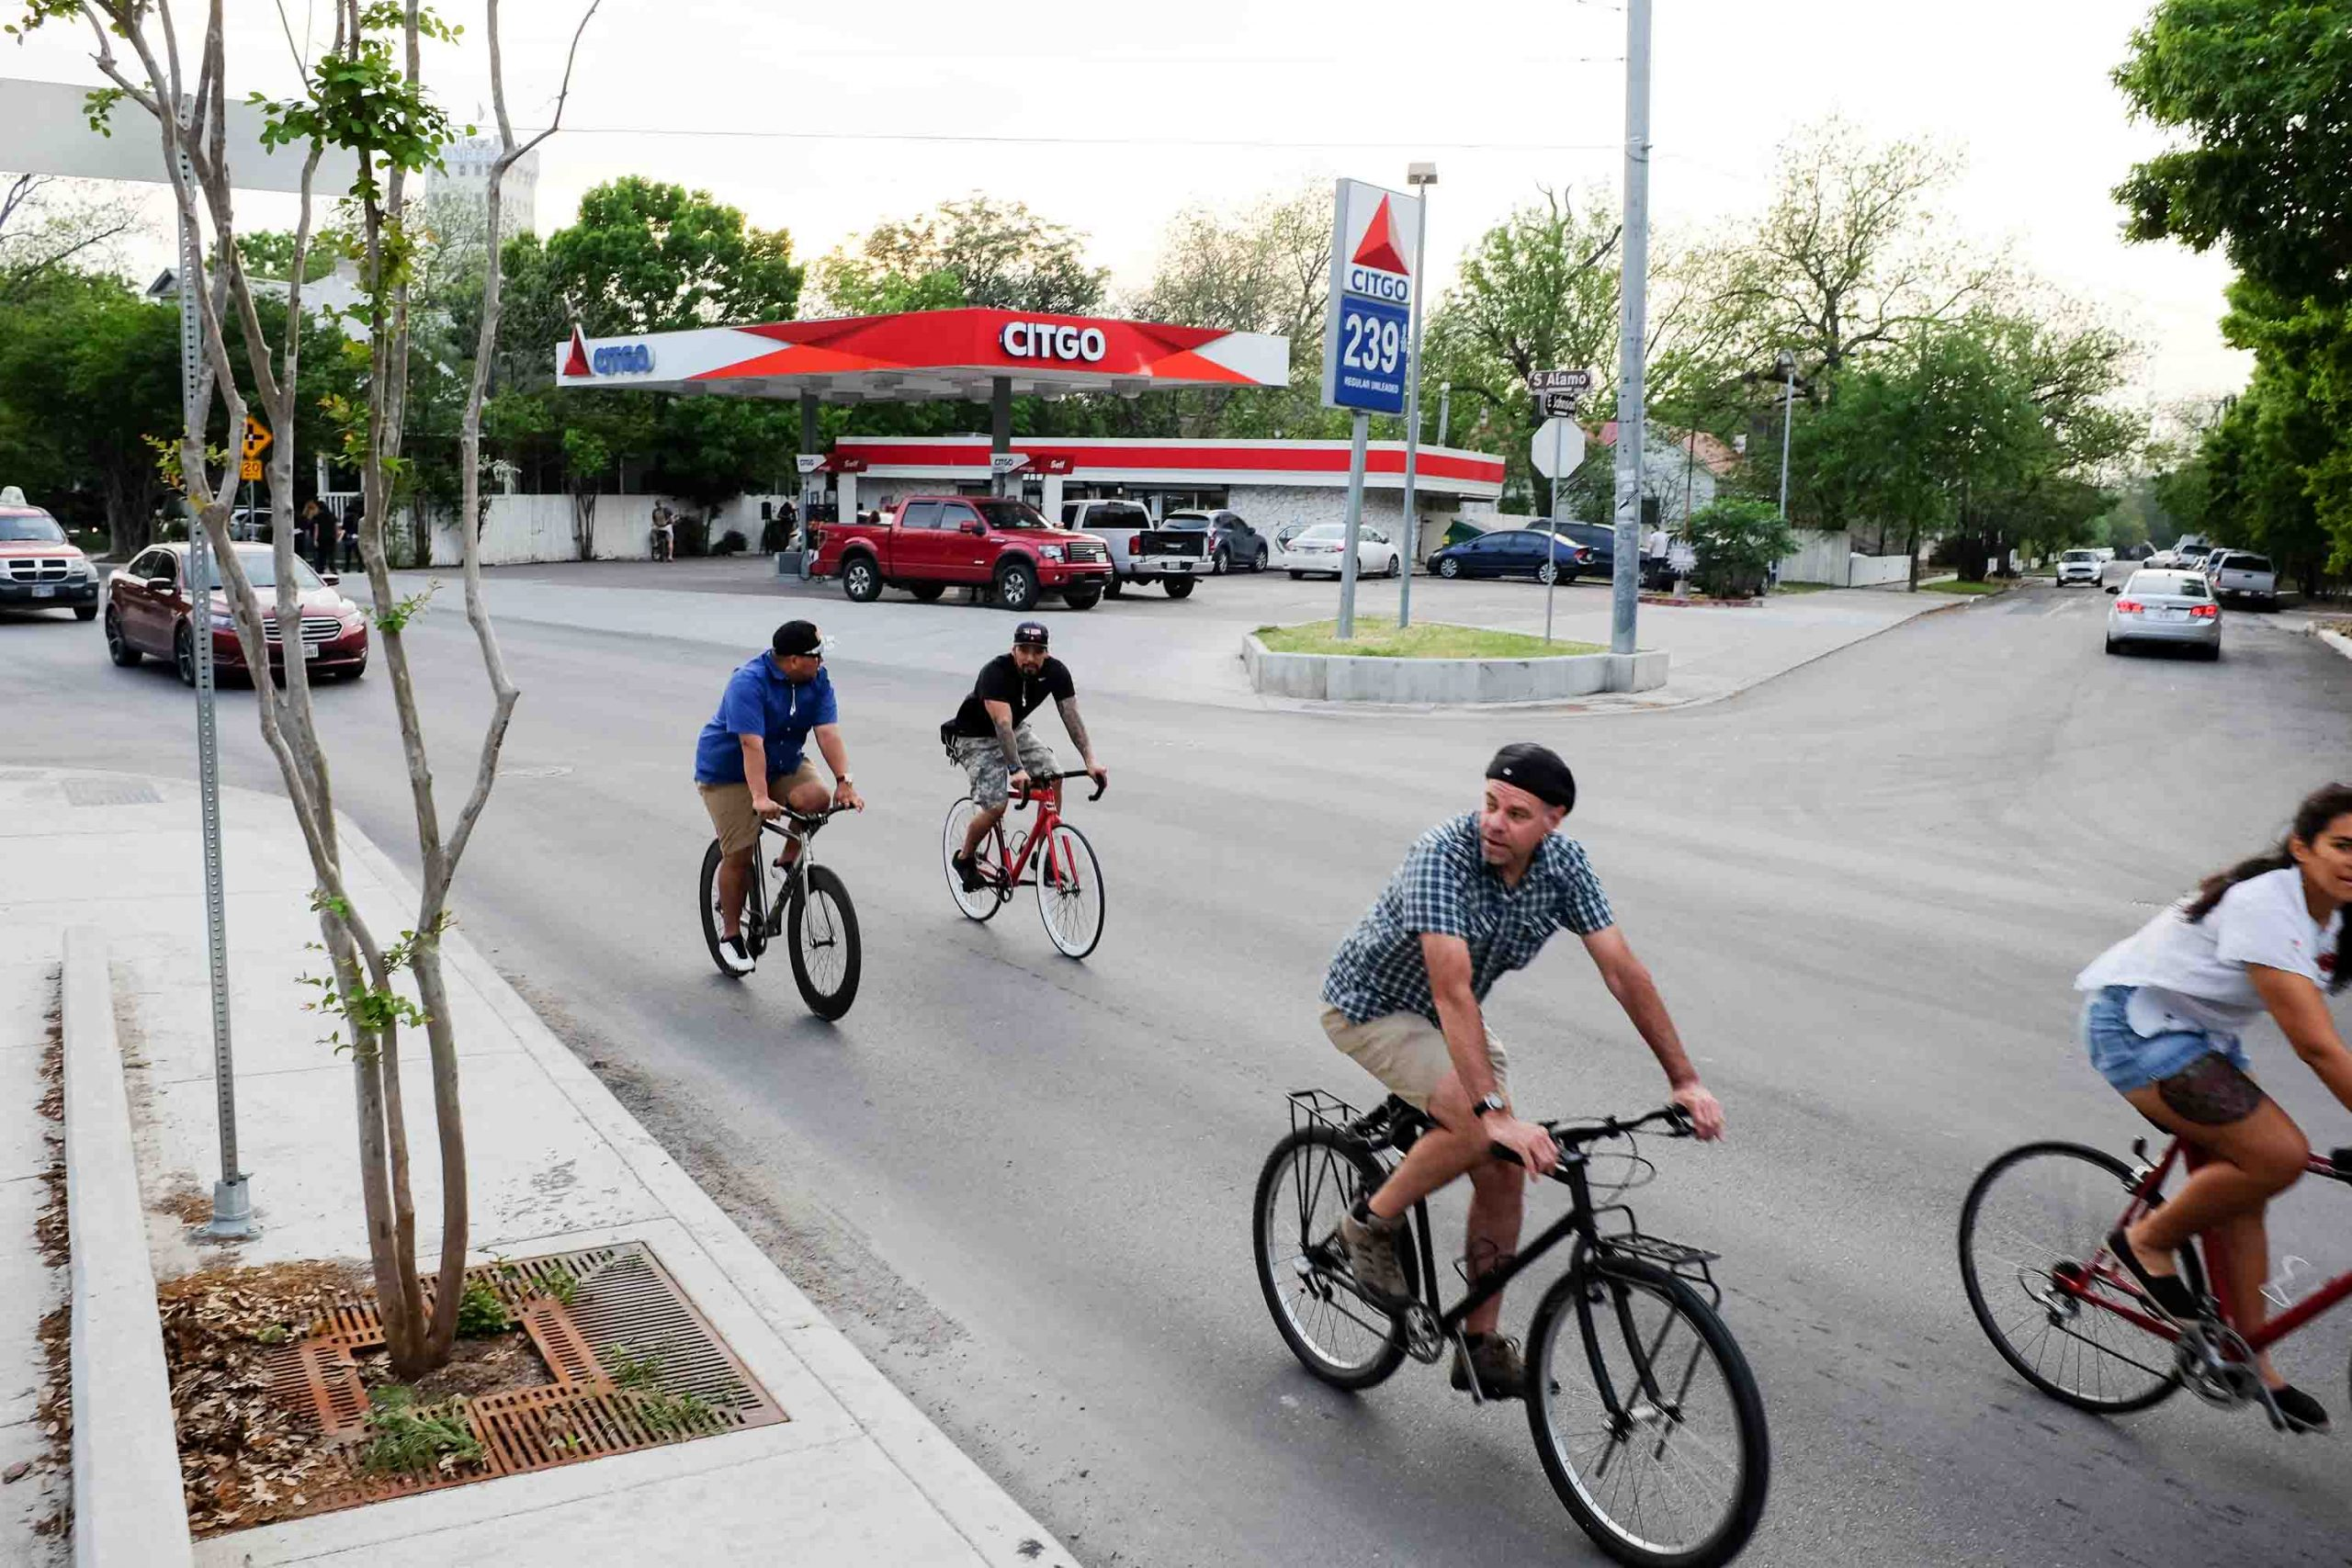 Cyclists ride on South Alamo Street in front of the former church and future home of Frank in Southtown. Photo by Scott Ball.